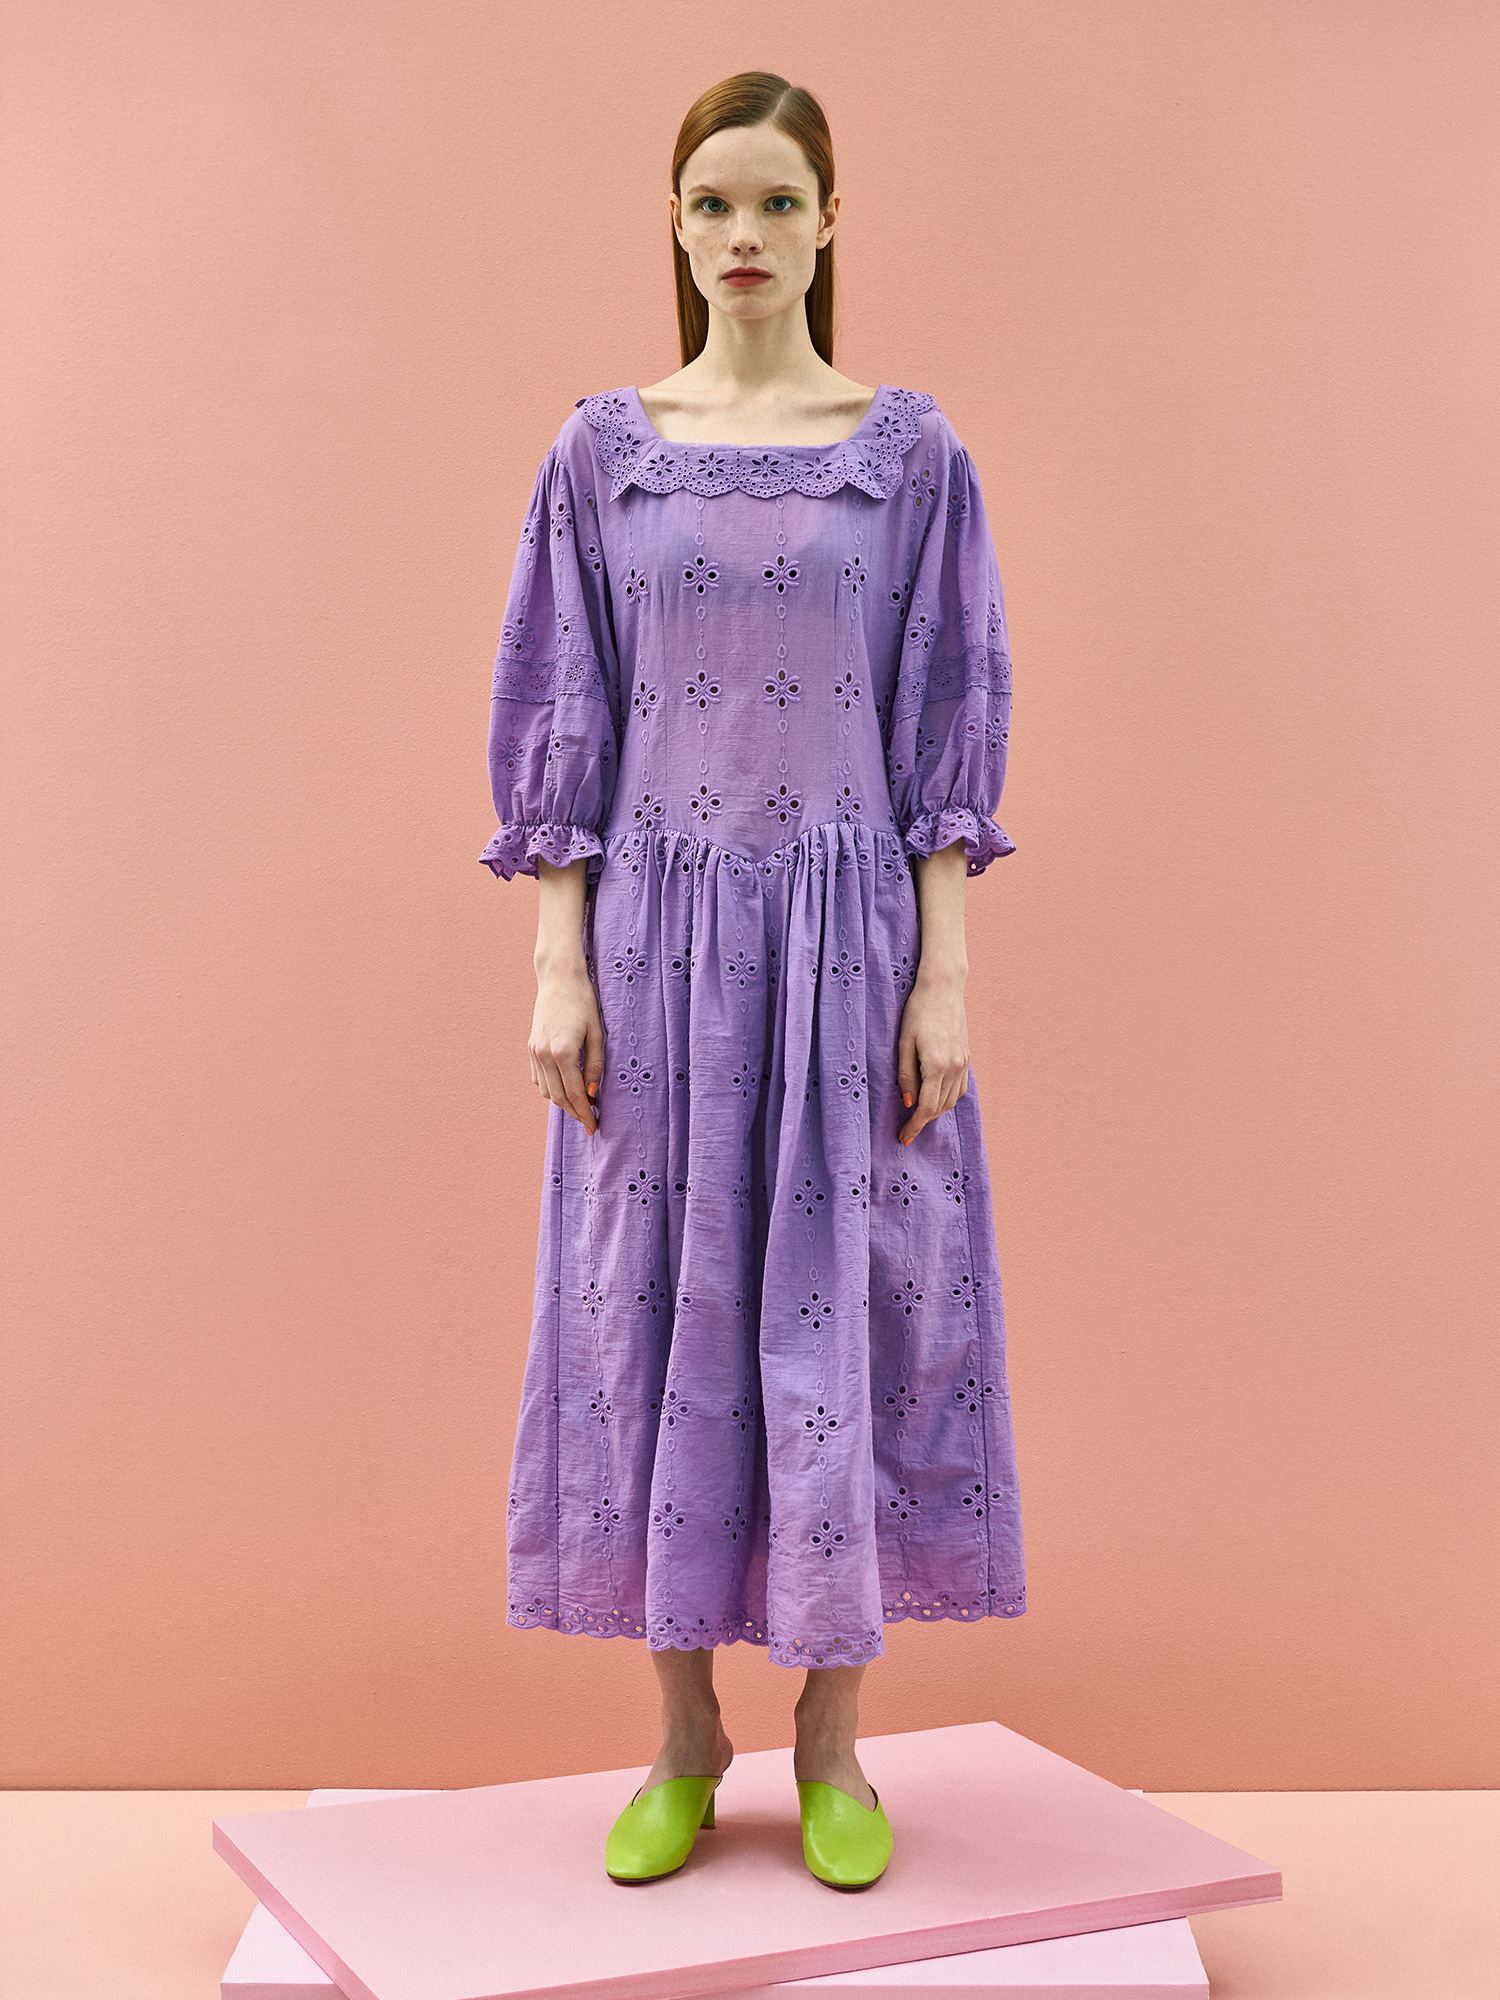 [주말특가30%]Girlish Lace Cotton Dress in Purple